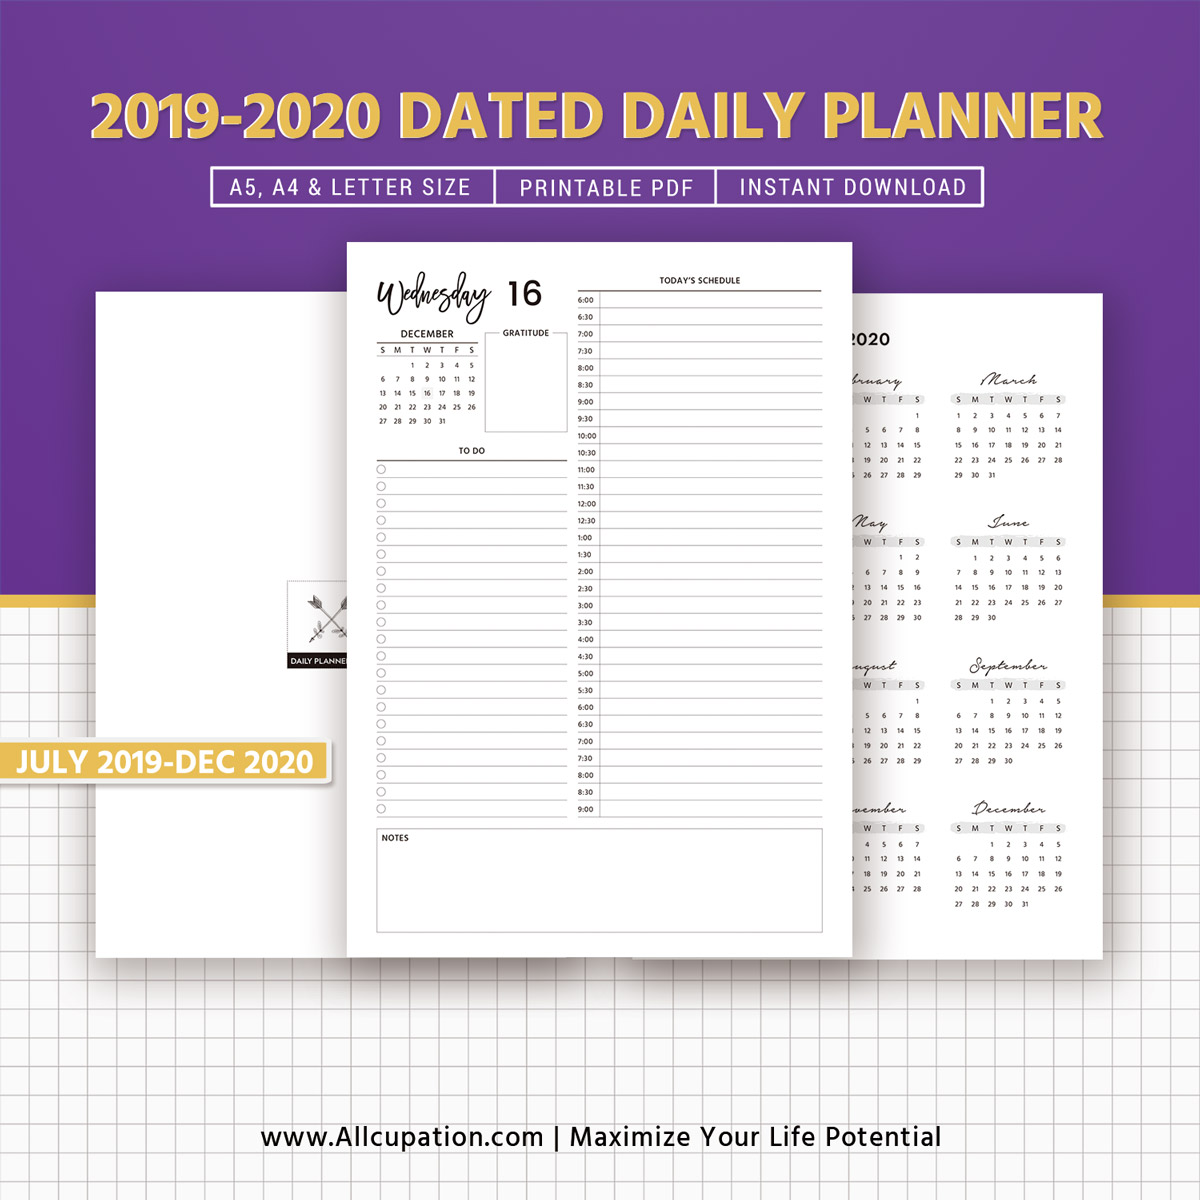 picture about Daily Agenda referred to as 2019-2020 Every day Planner Printable, Dated Every day Planner, 18 Weeks, Each day Plan, Every day Organizer, Filofax A5, A4, Letter Measurement, Planner Refills,